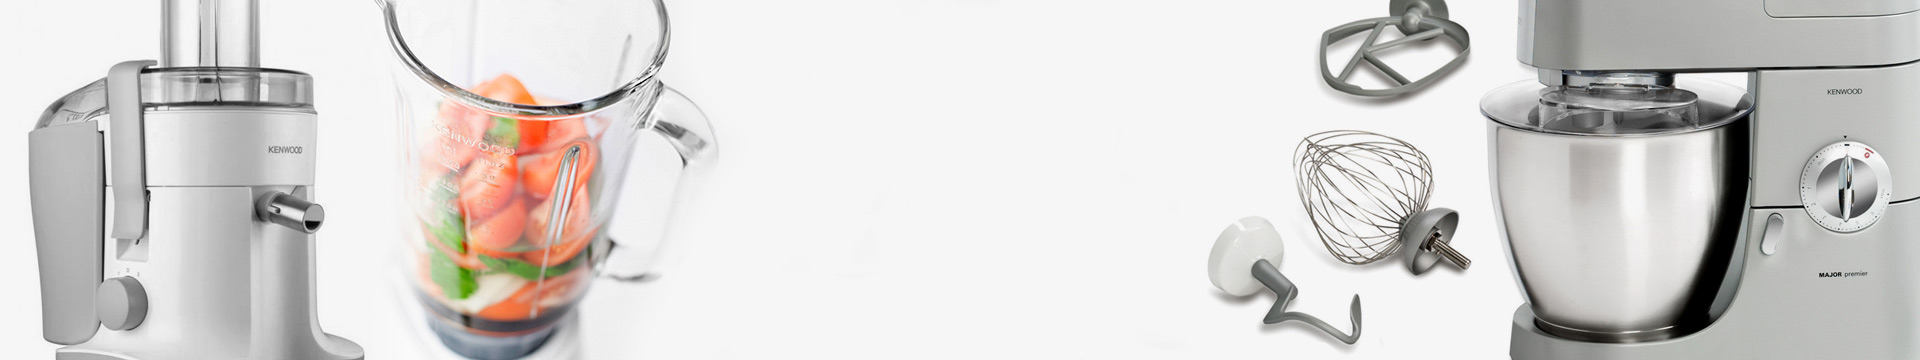 Banner image of Kenwood